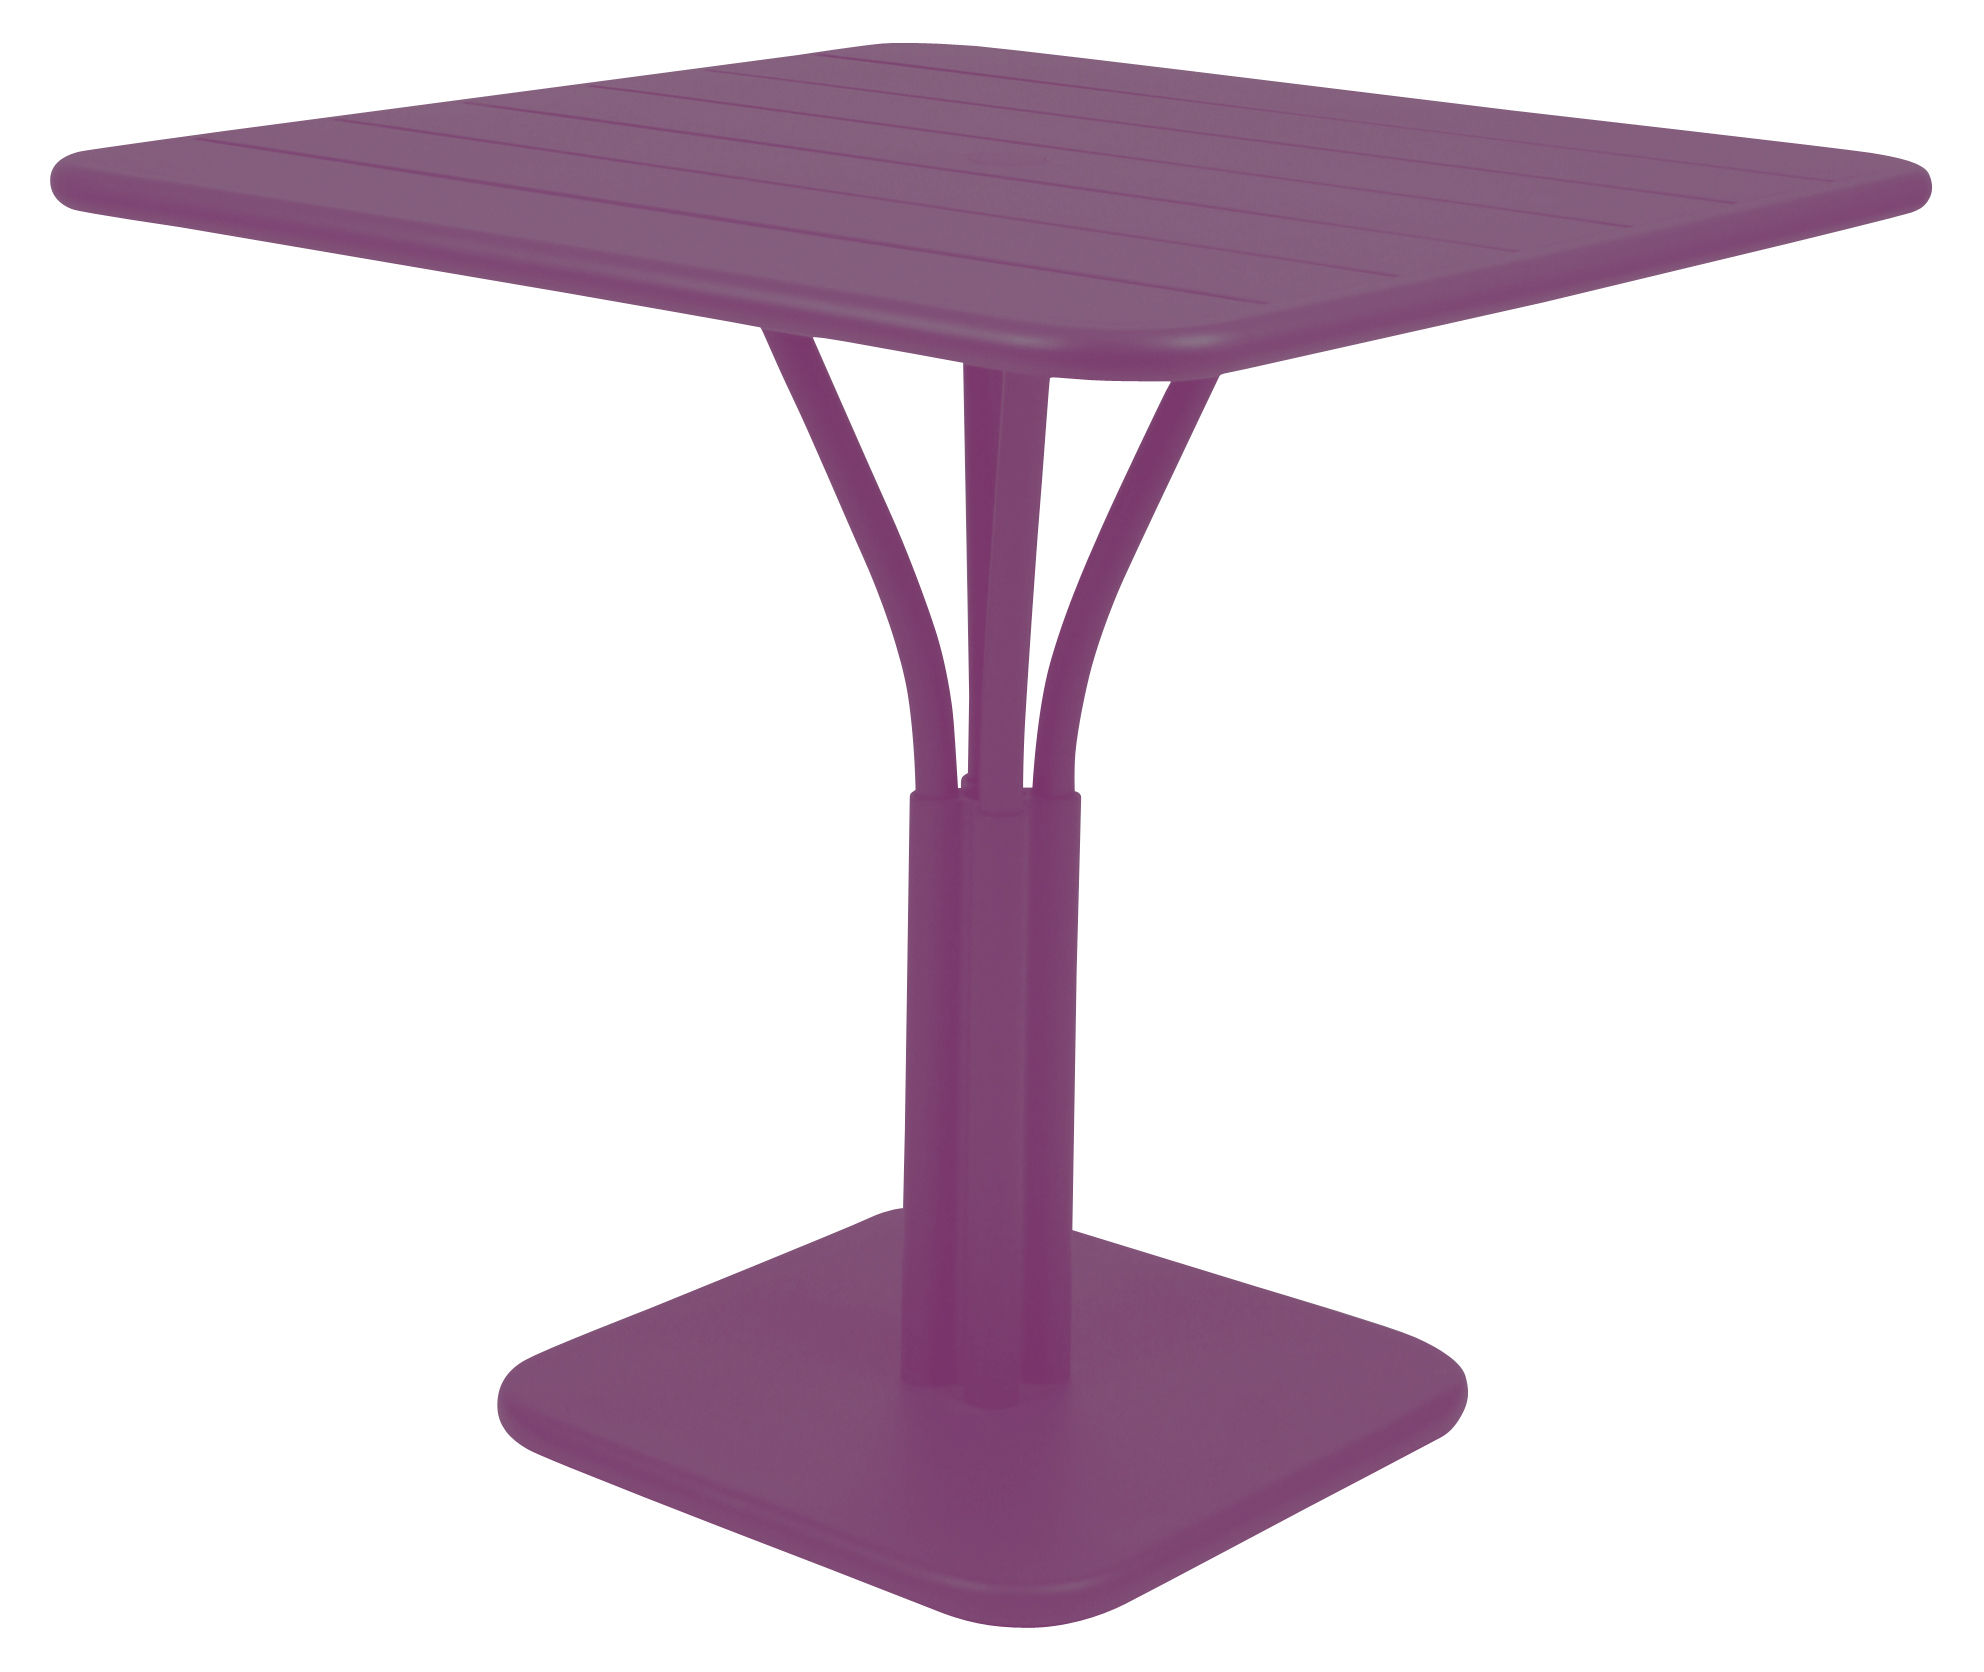 luxembourg table 80 x 80 cm by fermob aubergine ebay. Black Bedroom Furniture Sets. Home Design Ideas